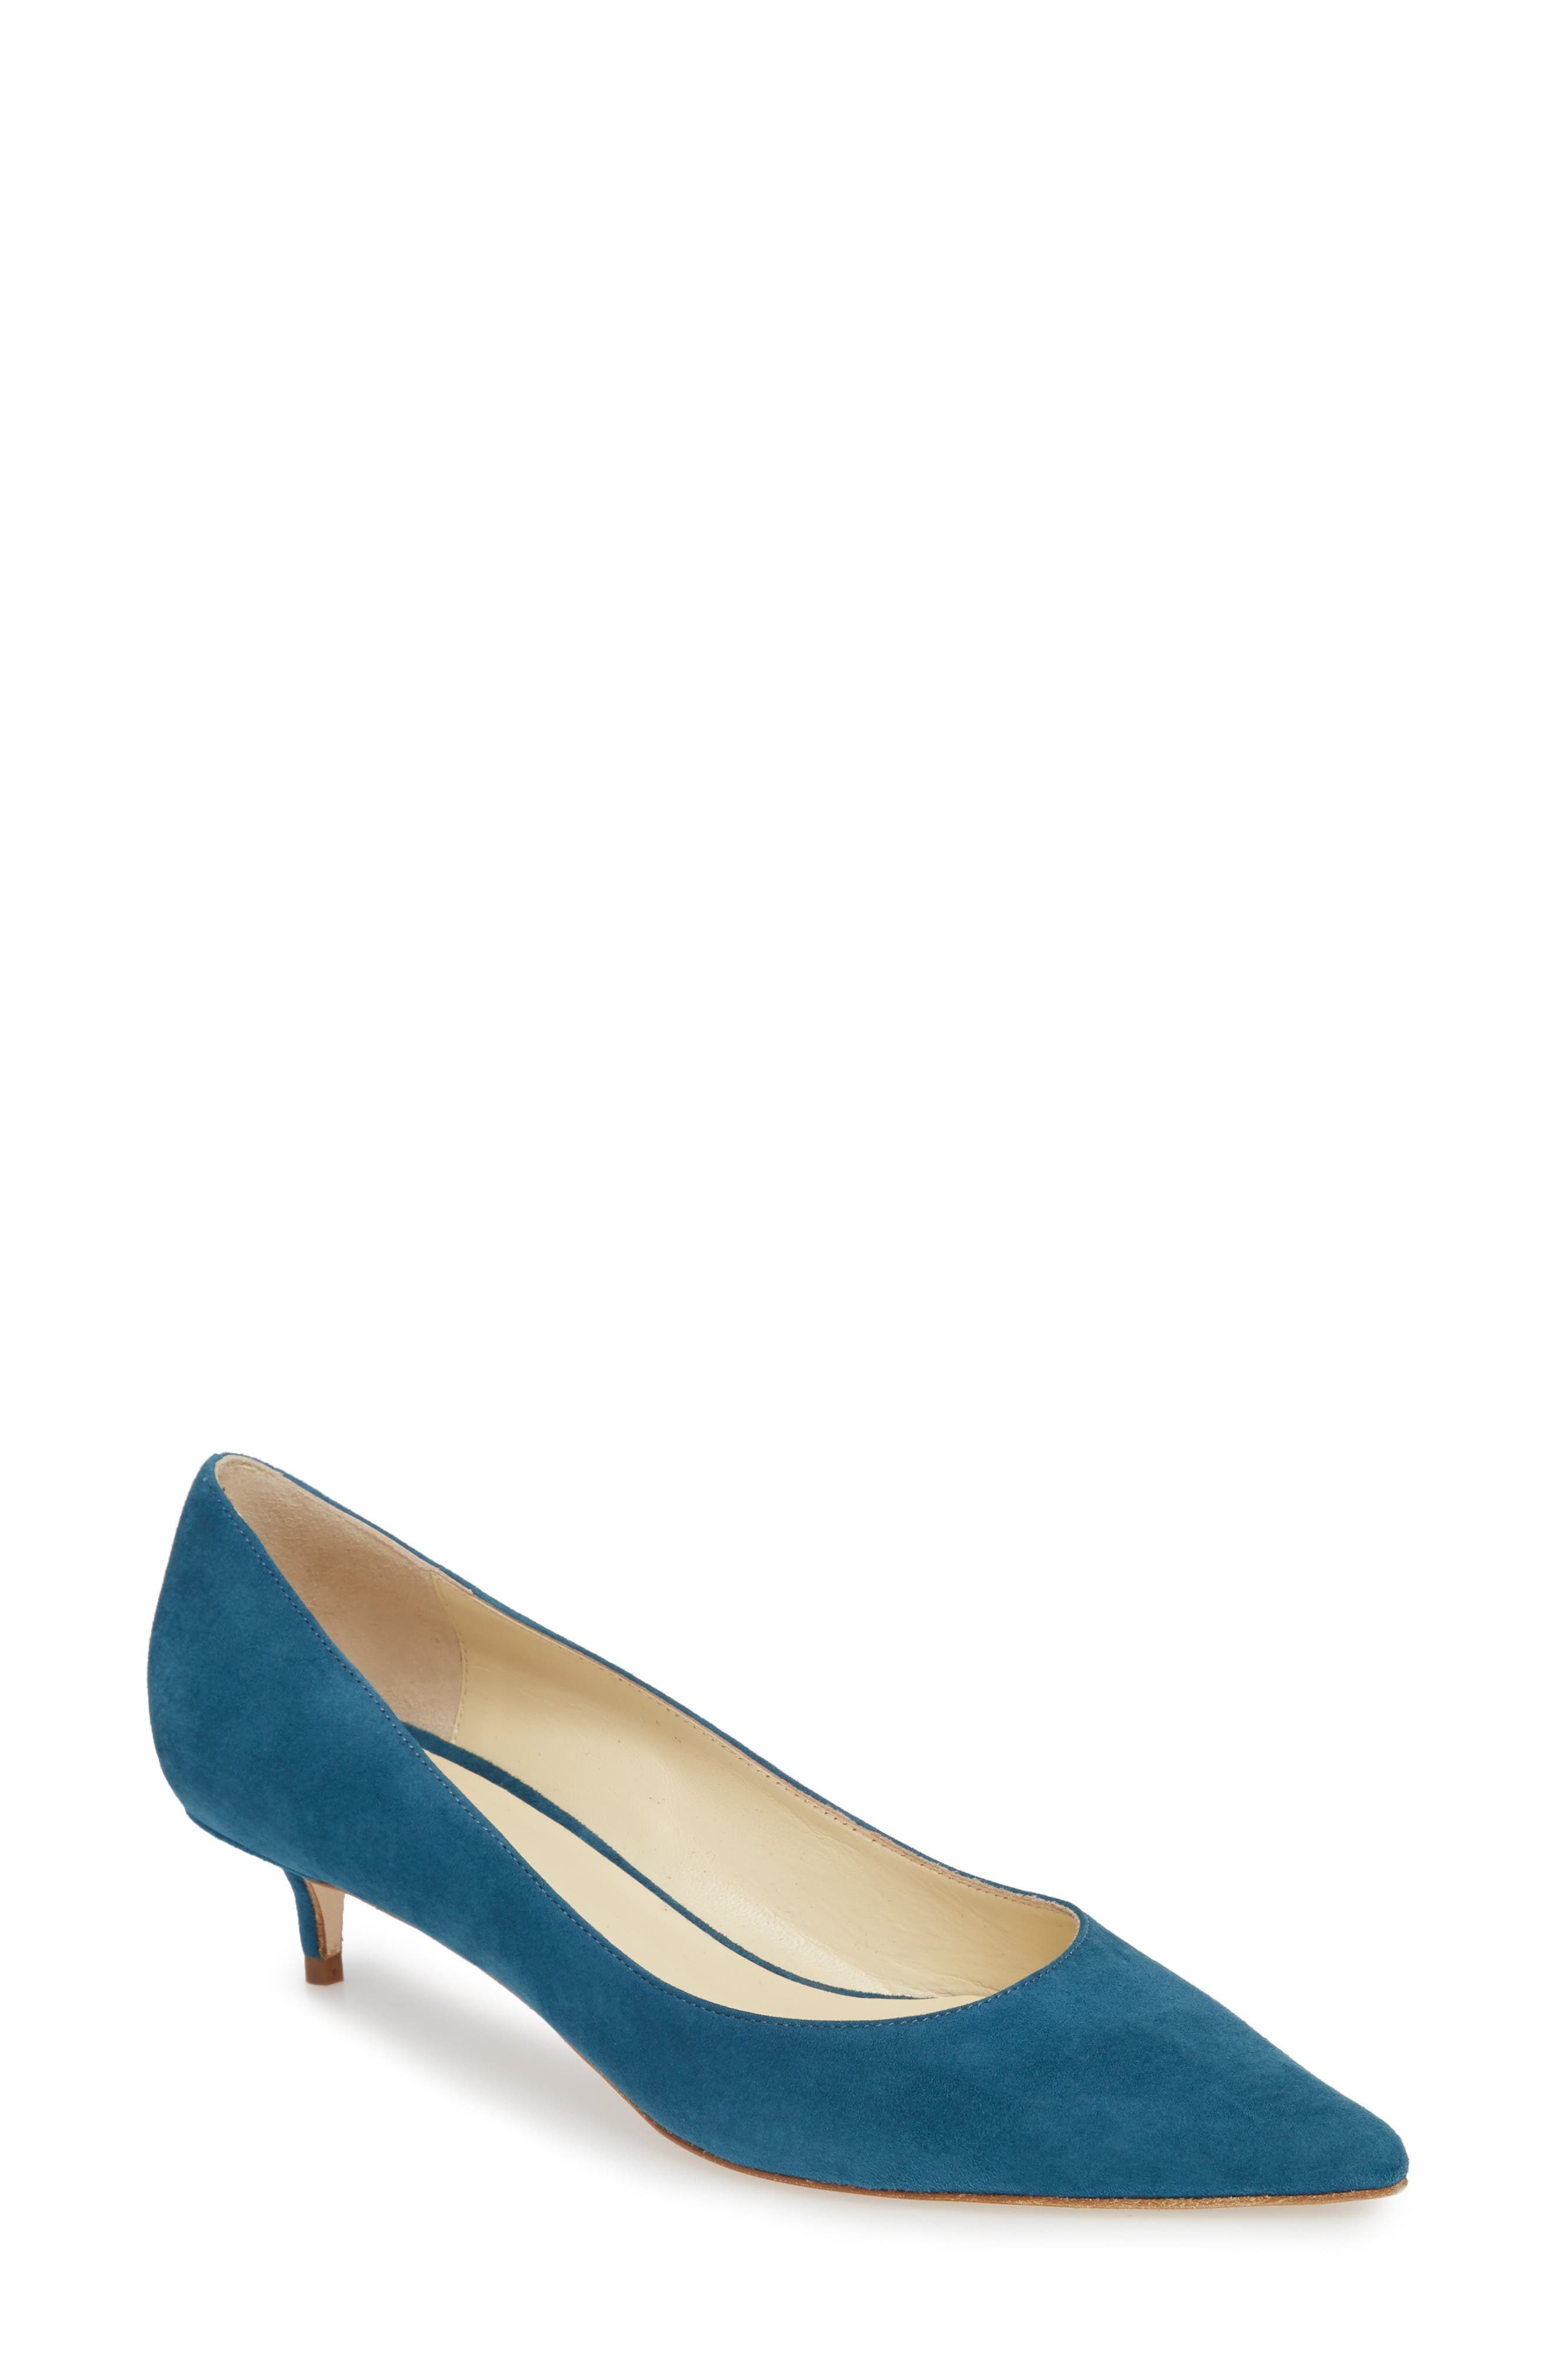 Butter Born Pointy Toe Pump,                             Main thumbnail 5, color,